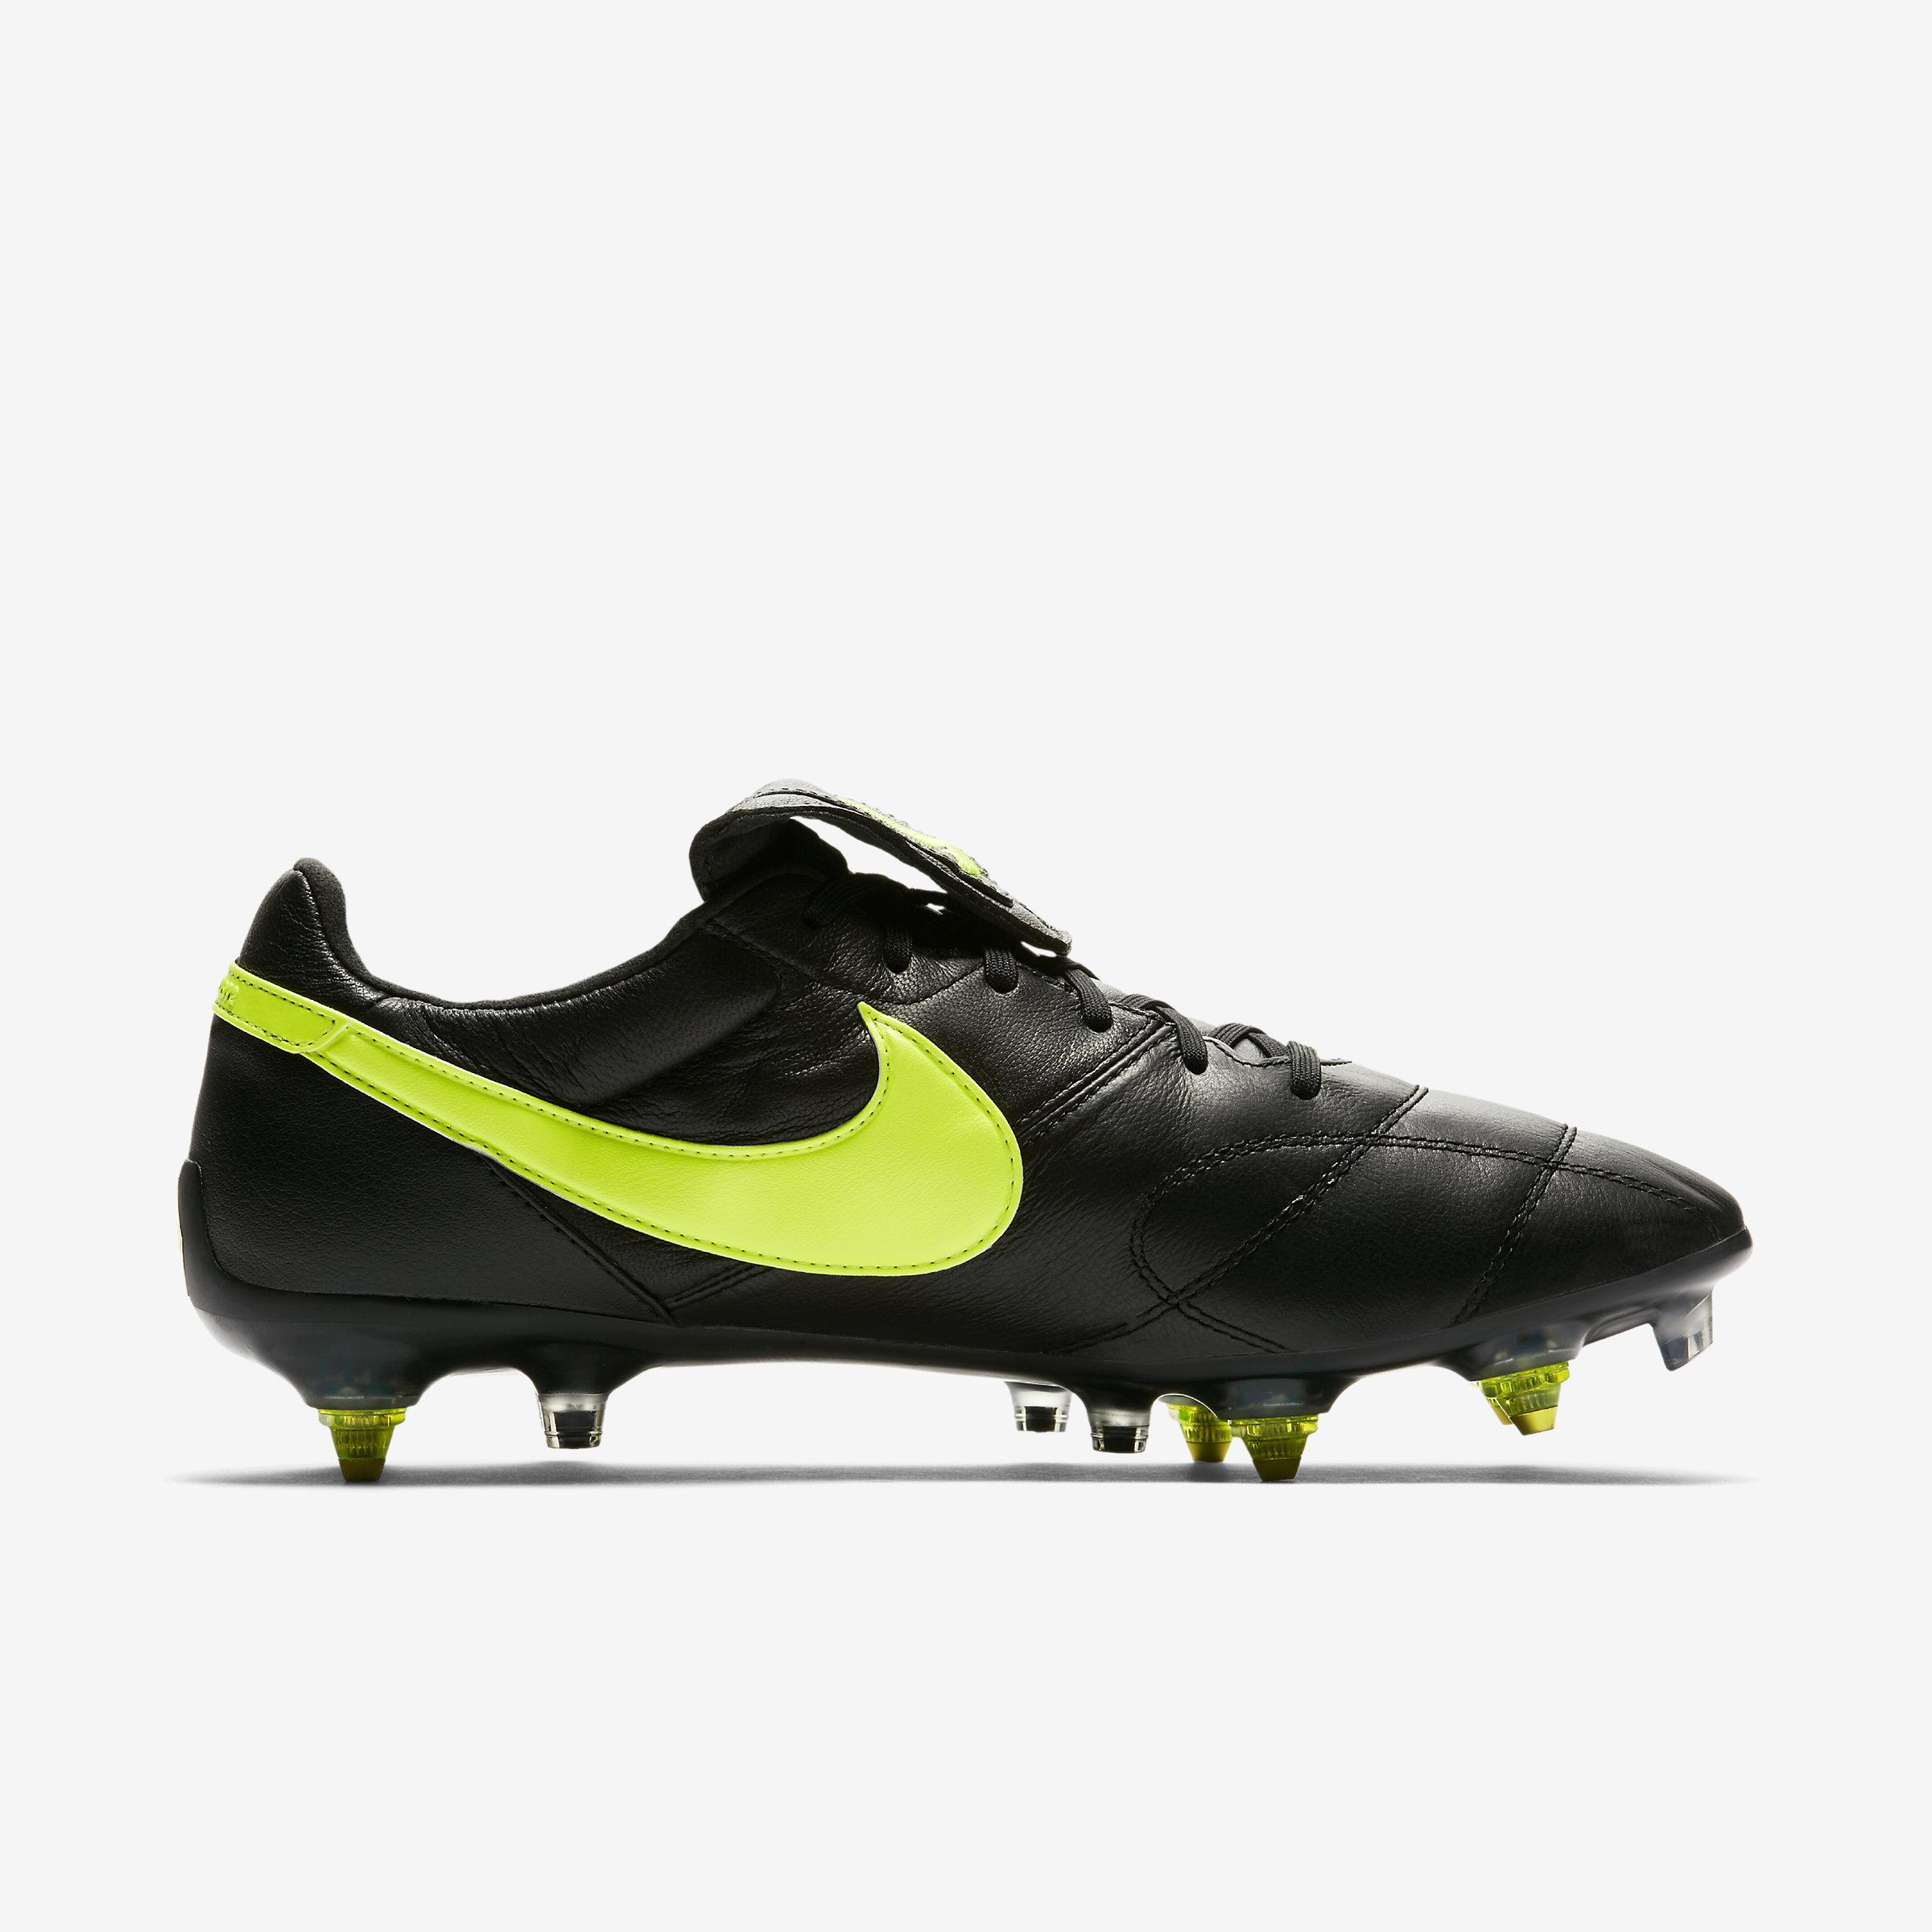 Nike Leather Premier Ii Anti-clog Traction Sg-pro in Black for Men